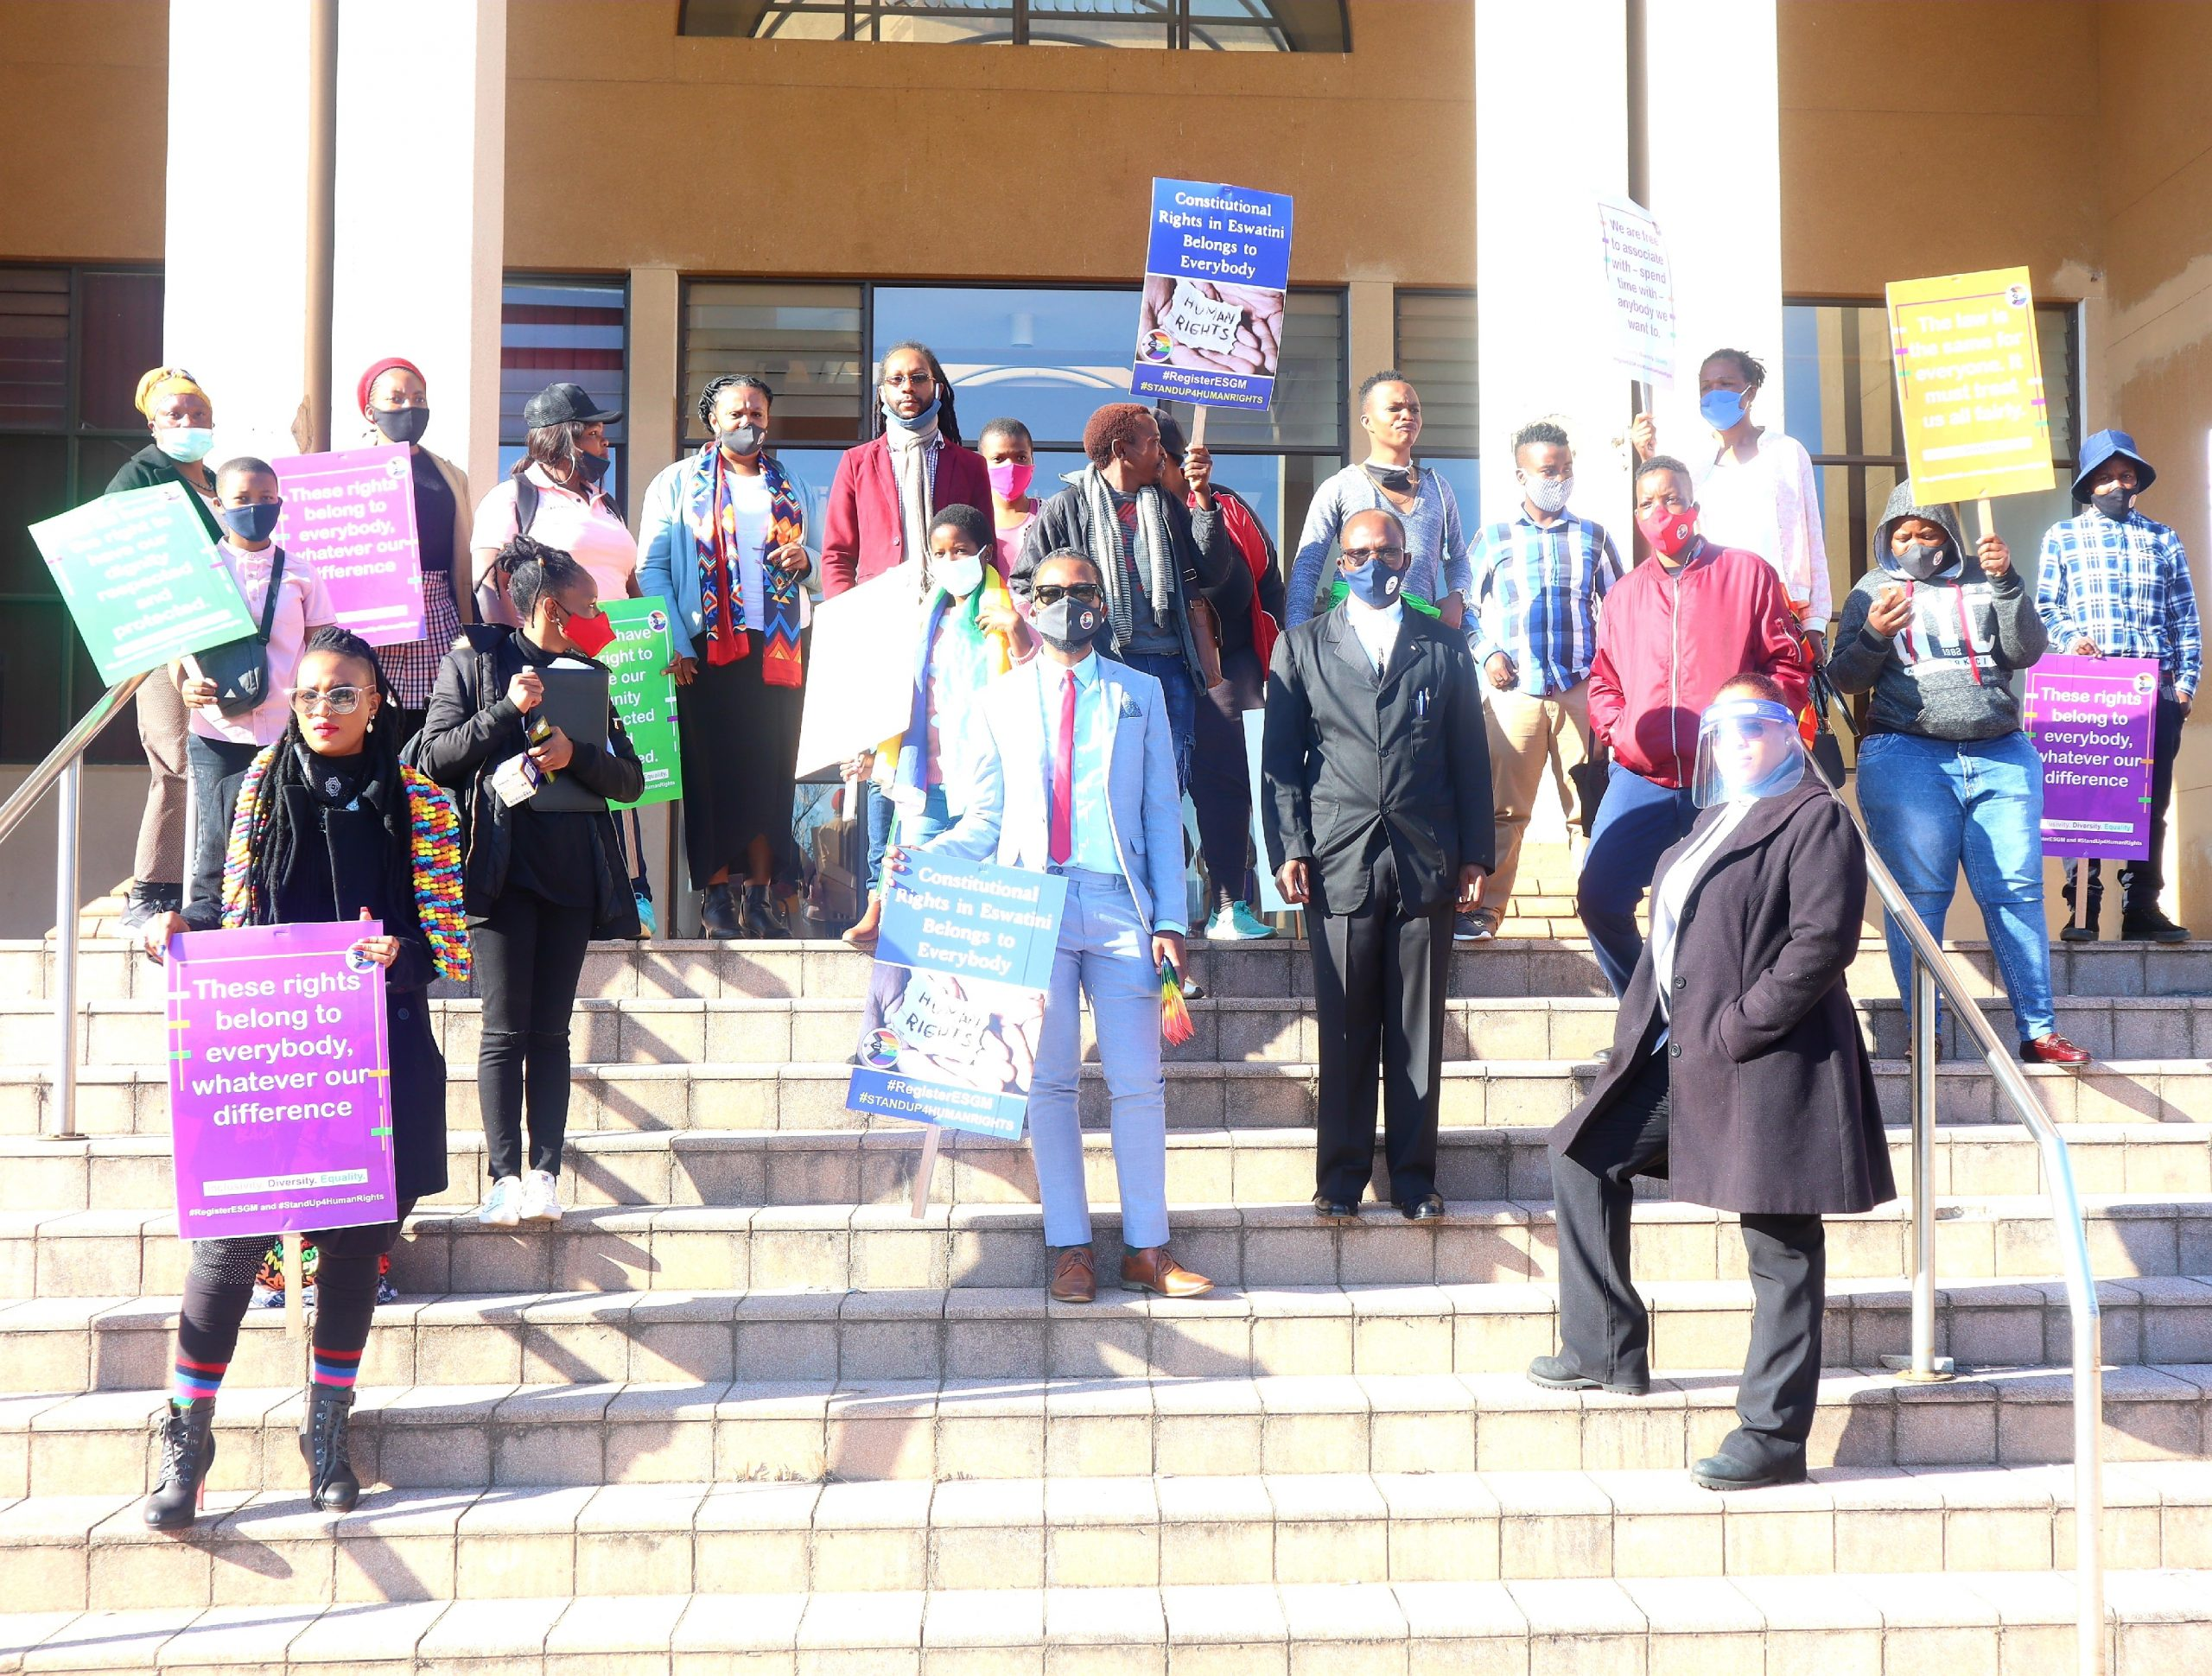 MEDIA ADVISORY: ESWATINI HIGH COURT POSTPONES CASE ON THE REFUSAL TO REGISTER AN LGBT ADVOCACY GROUP